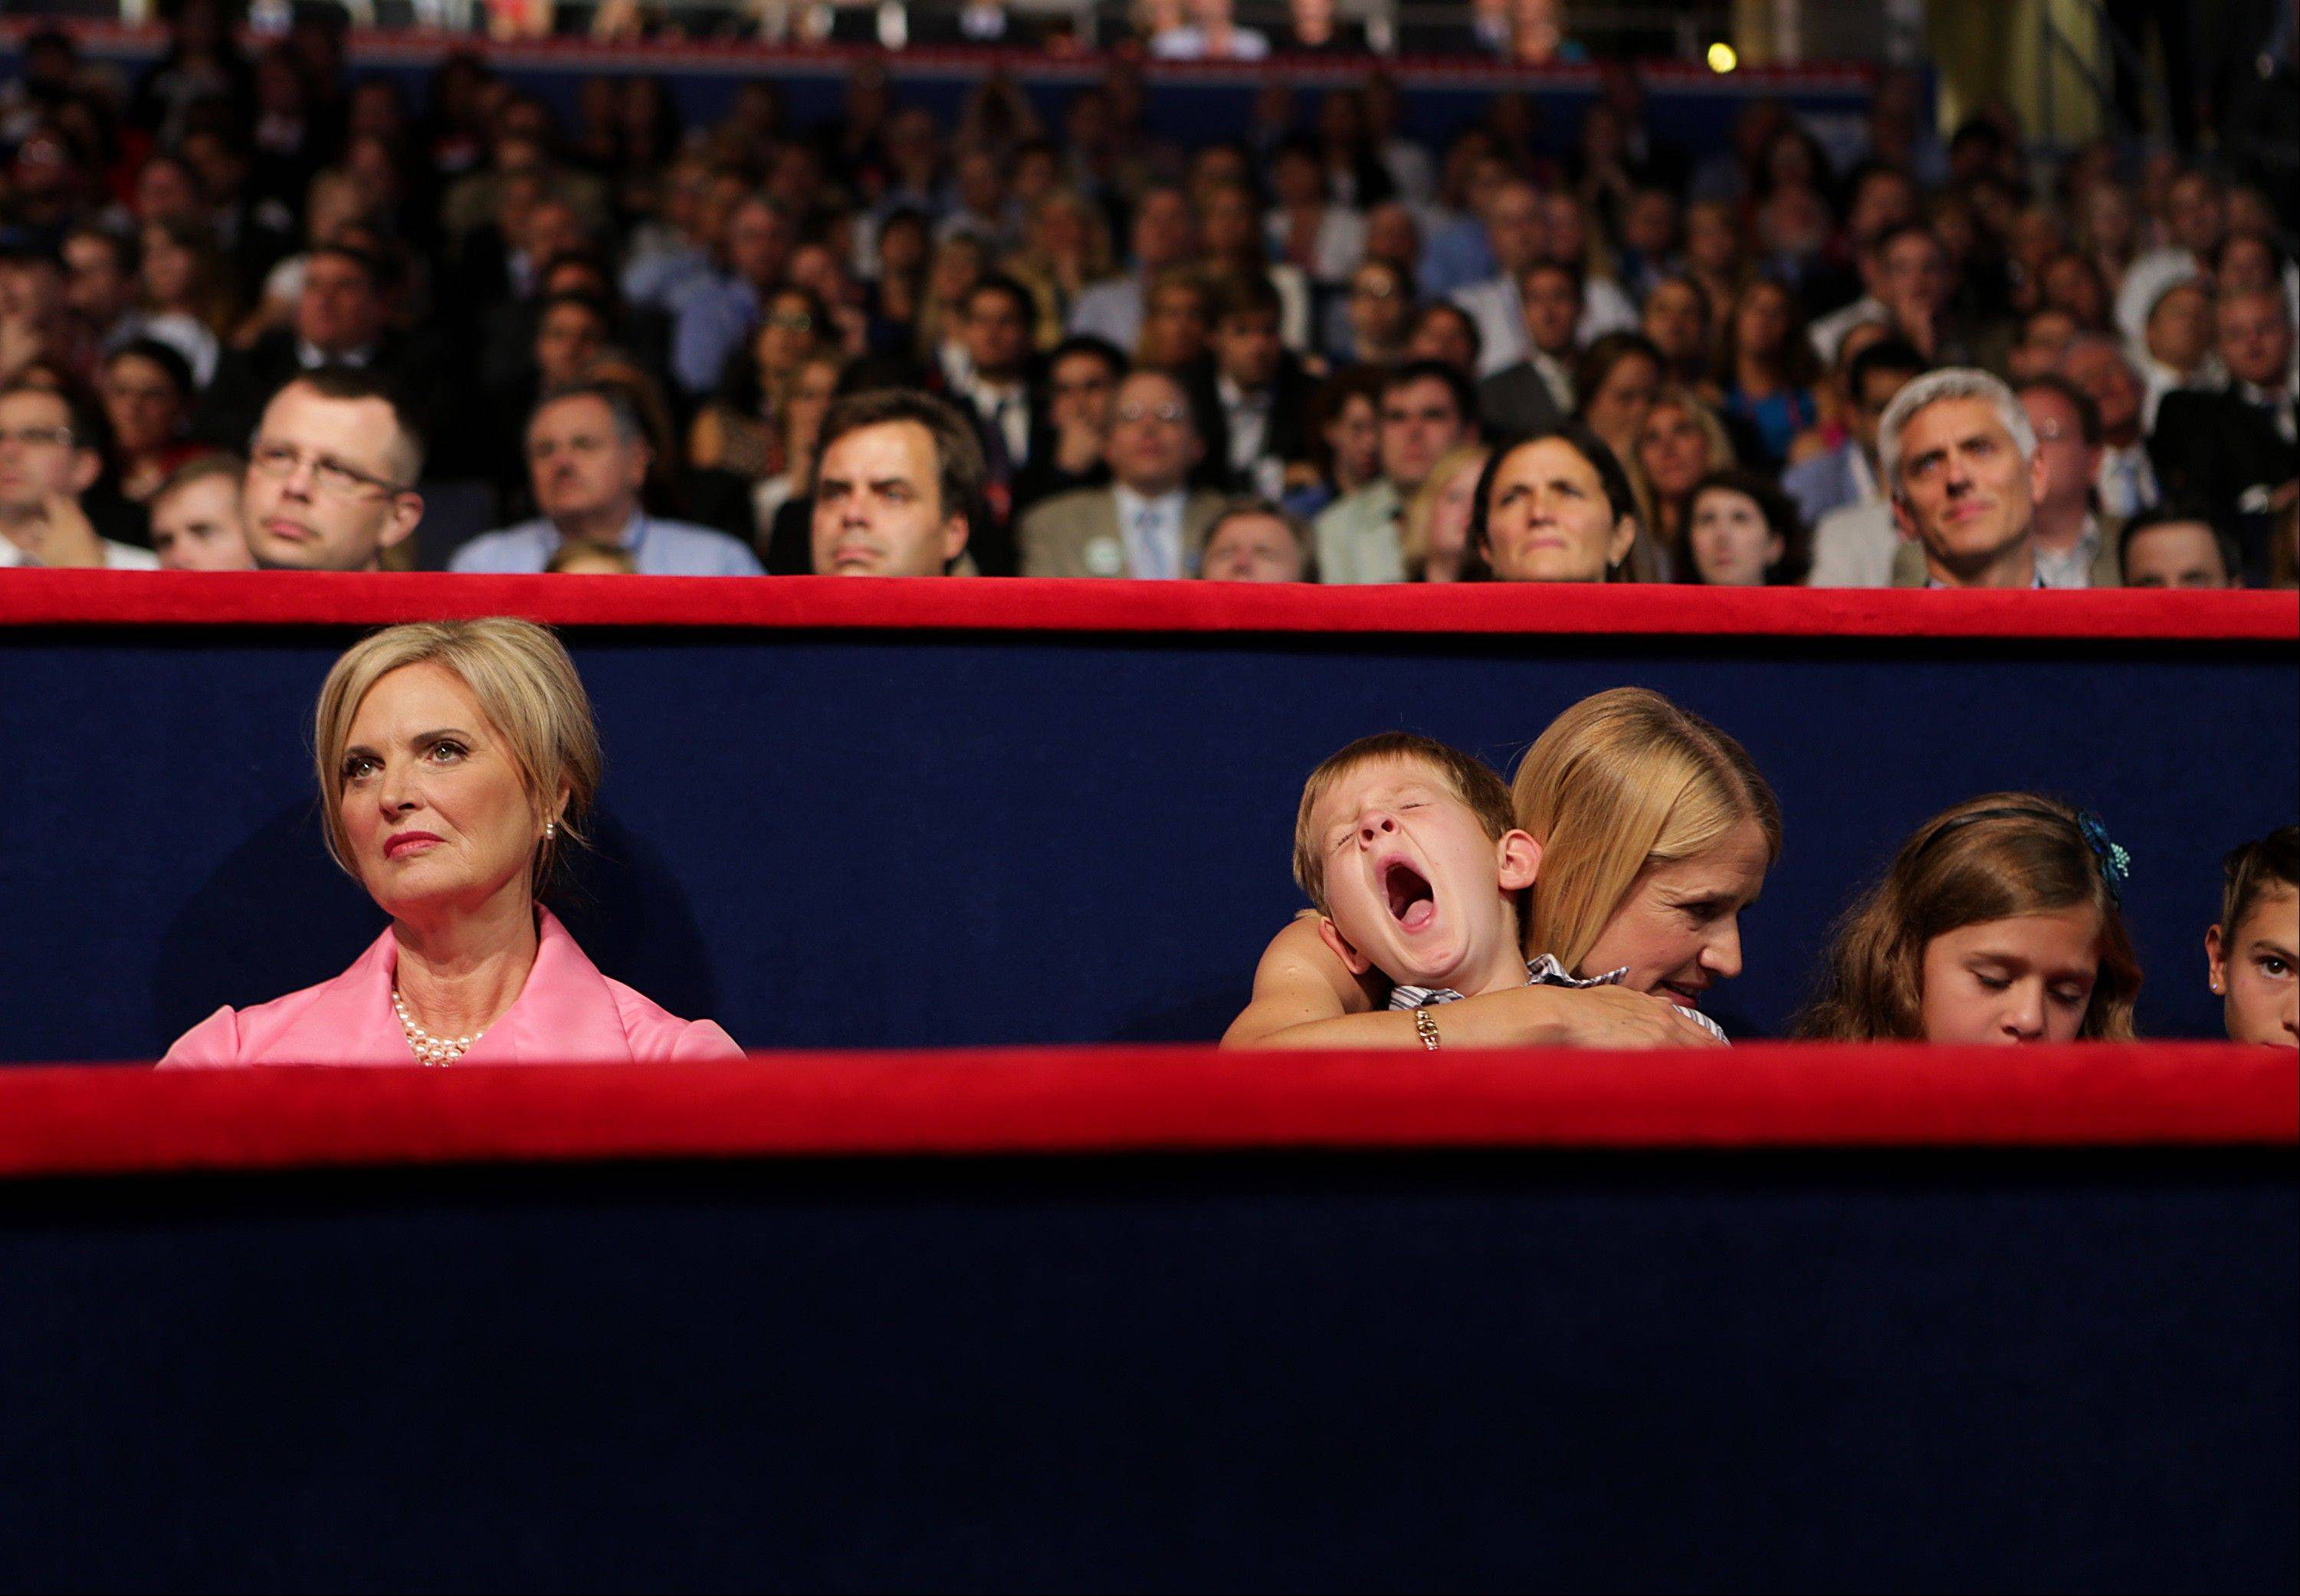 Ann Romney, wife of Republican presidential candidate Mitt Romney, left, sits with Janna Ryan, wife of Republican vice presidential candidate Paul Ryan, as she holds her yawning son Sam Ryan at the Republican National Convention (RNC) in Tampa, Florida, U.S., on Wednesday, Aug. 29, 2012. Representative Paul Ryan takes the stage tonight to address the RNC with a dual mission: to provide a spark, along with his big ideas about cutting the budget, to energize the party's base.